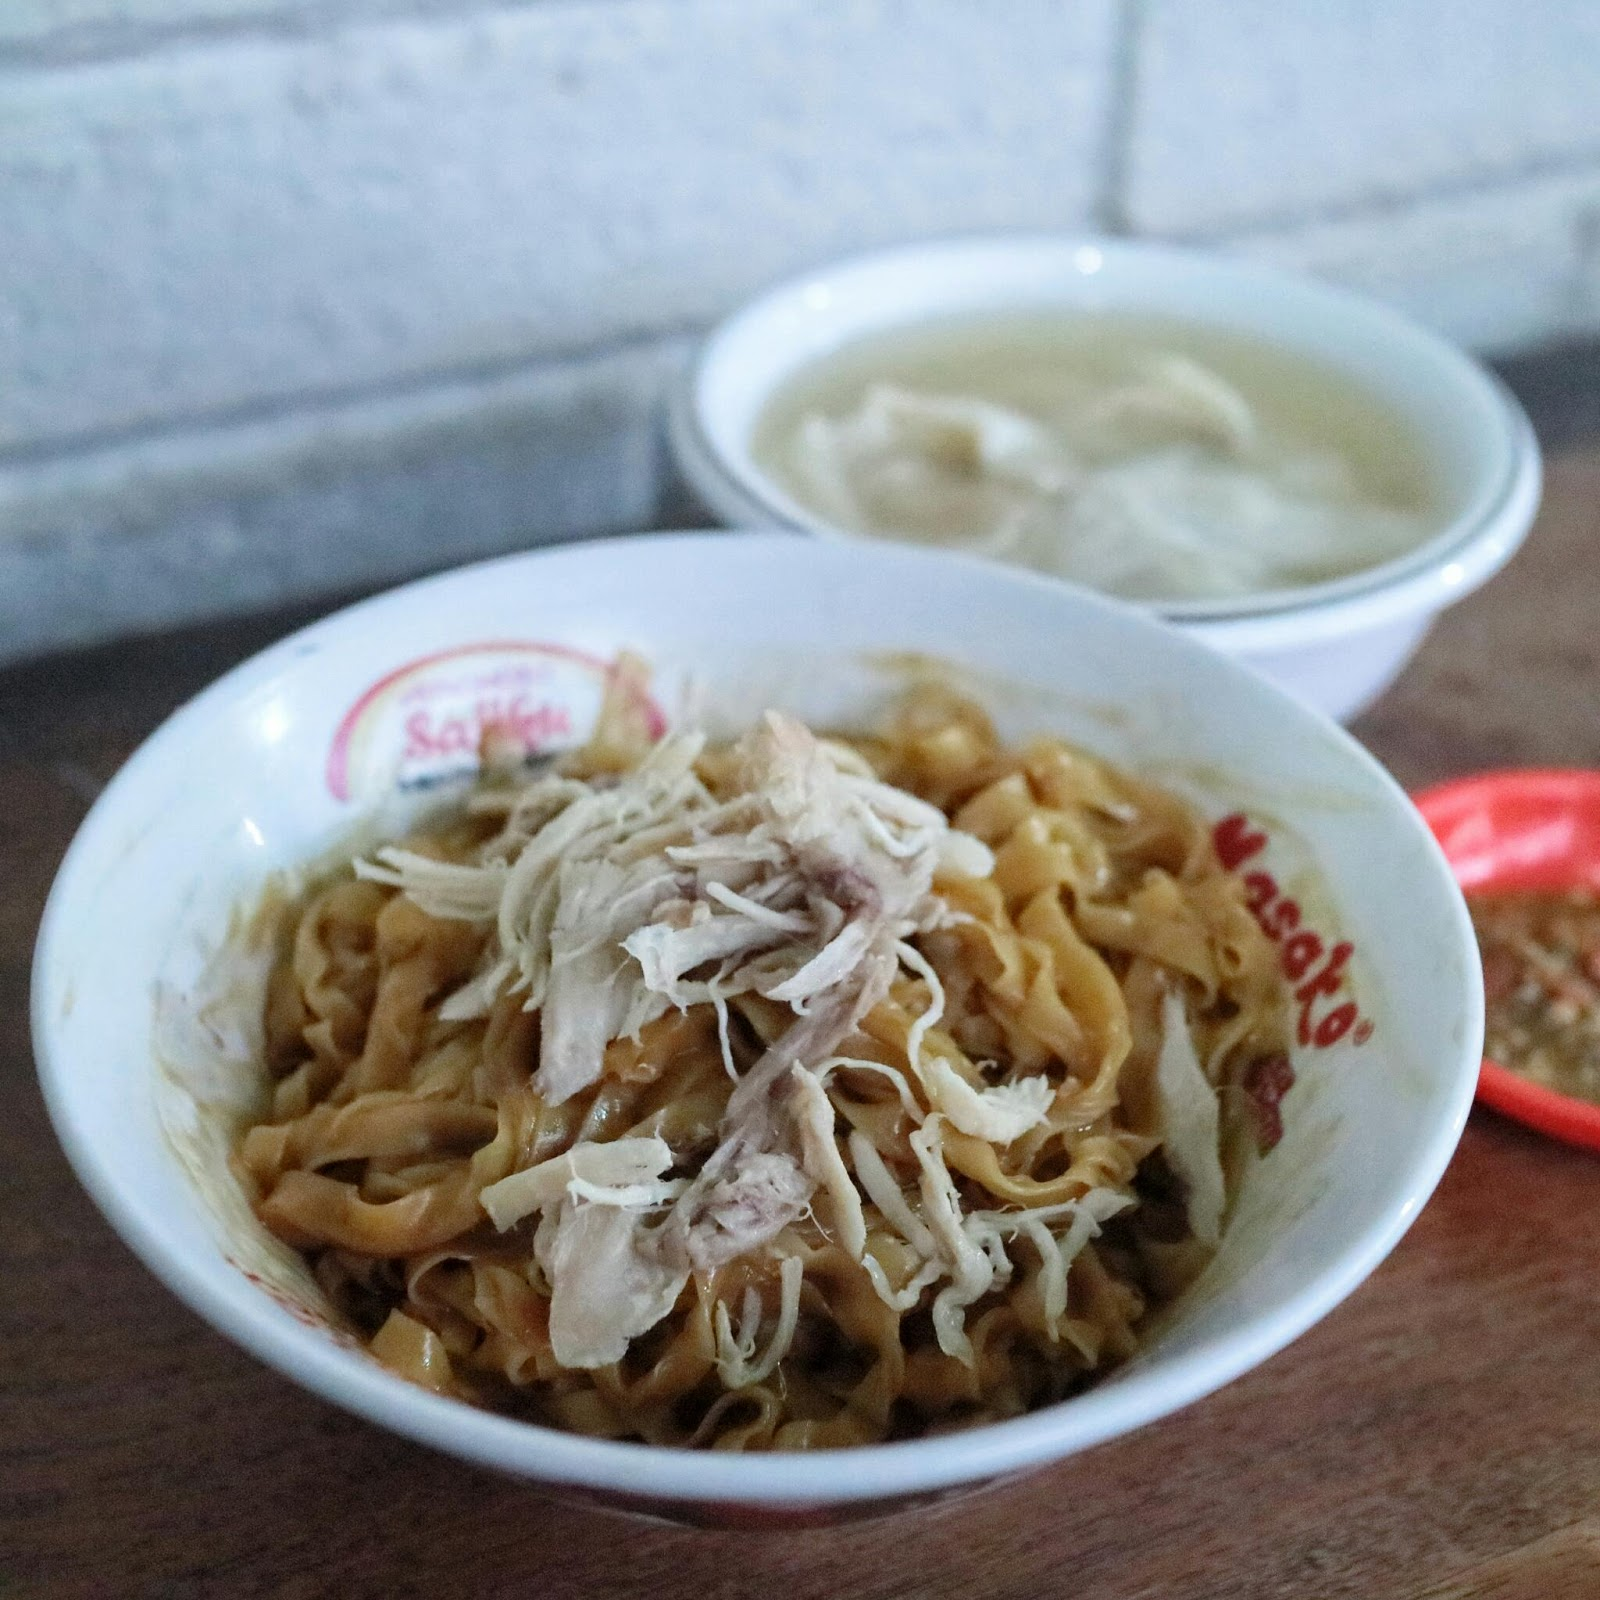 Mie koey fong bandung let 39 s go eat for Aja asian cuisine menu